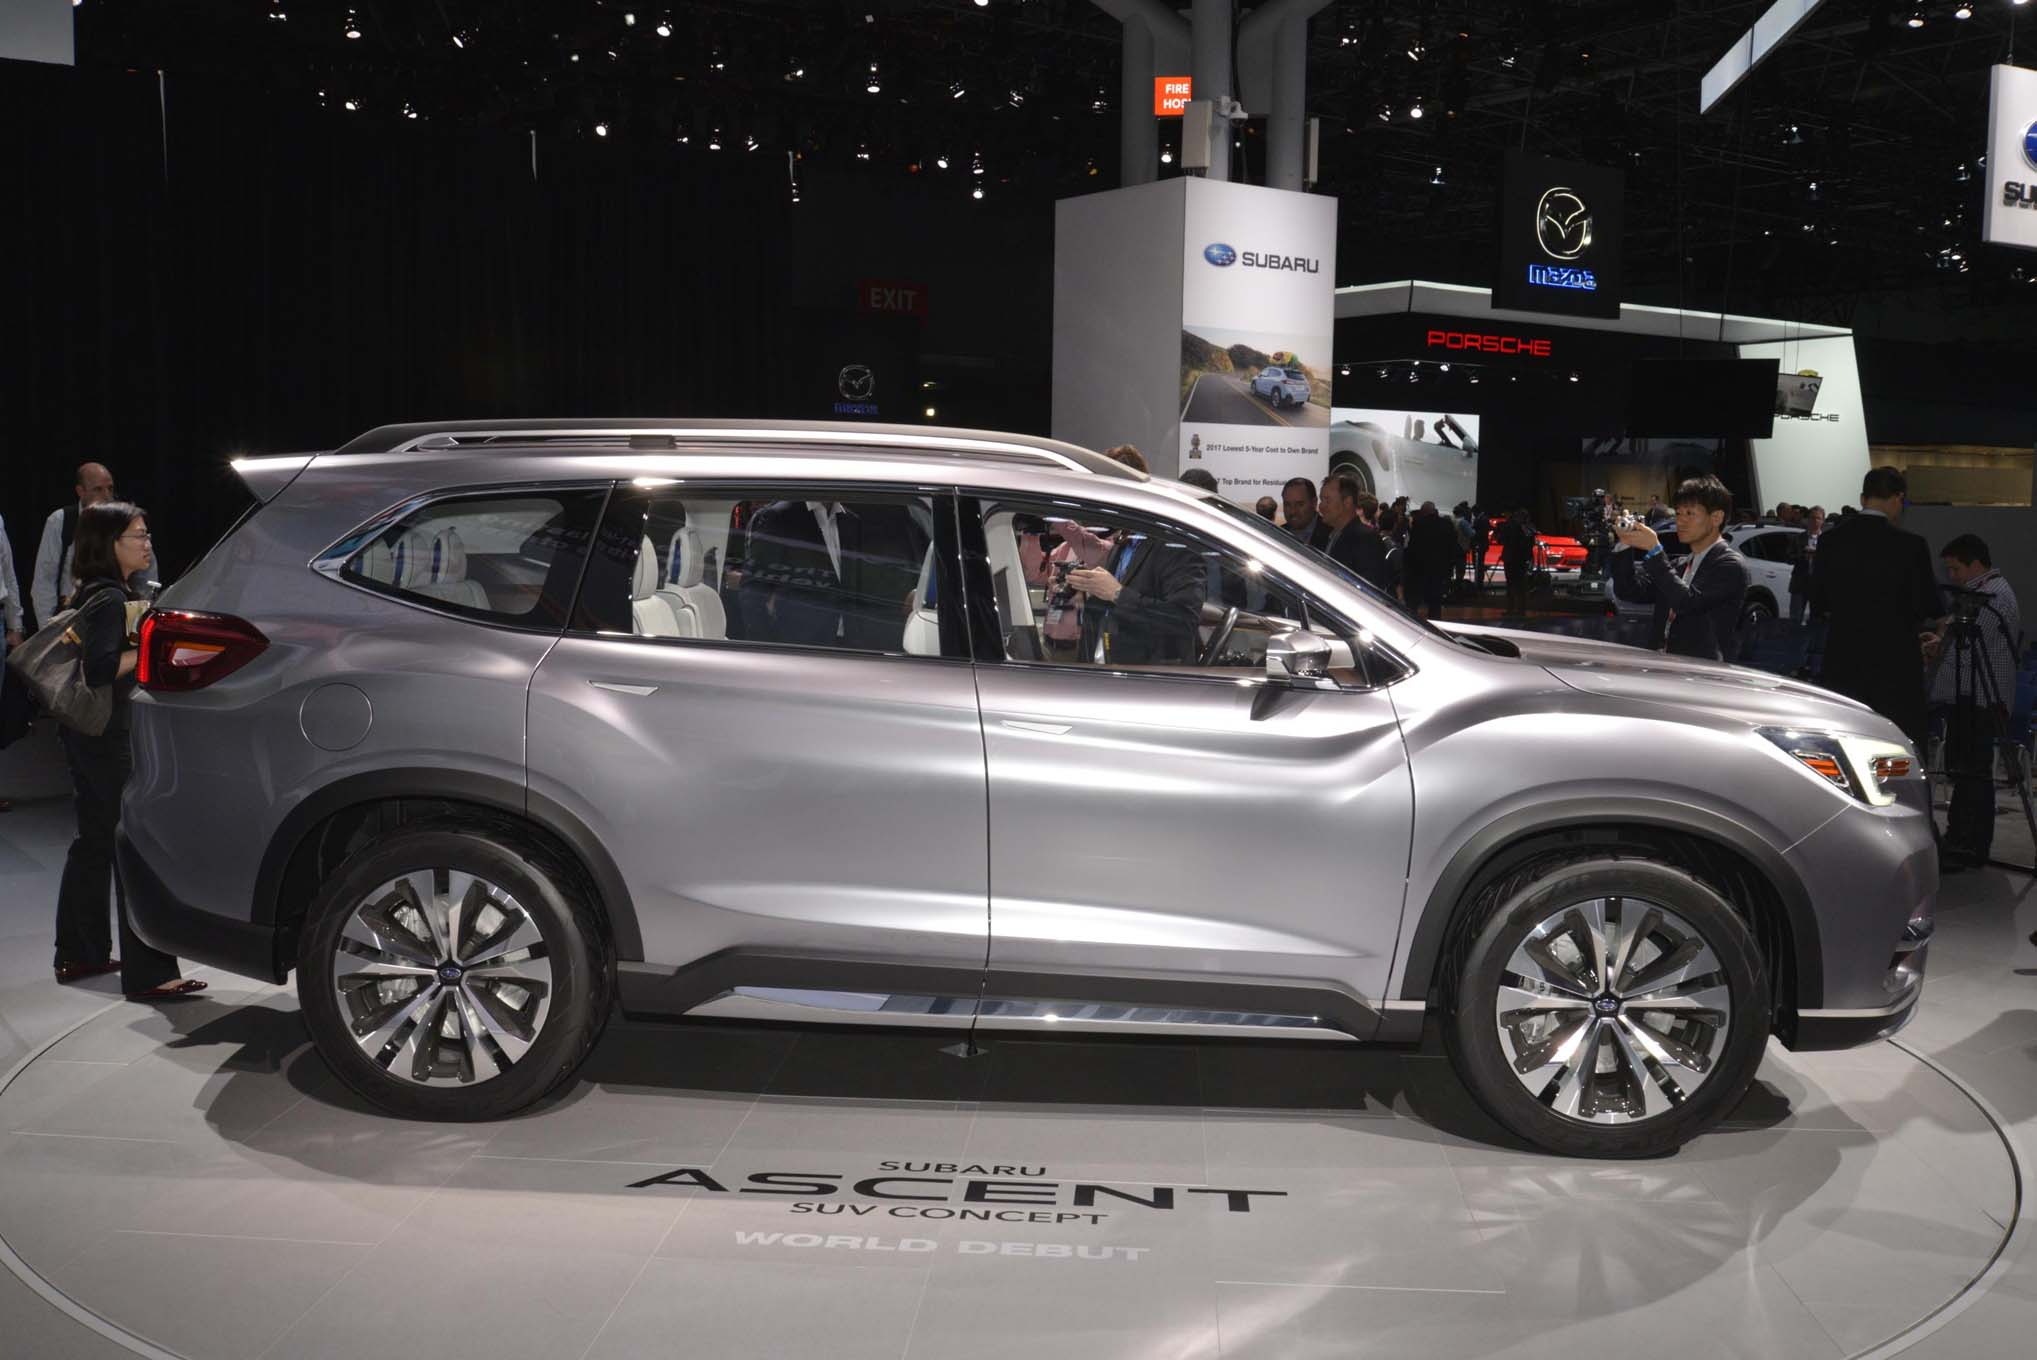 2018 Subaru Ascent SUV Revealed in New York - The Drive